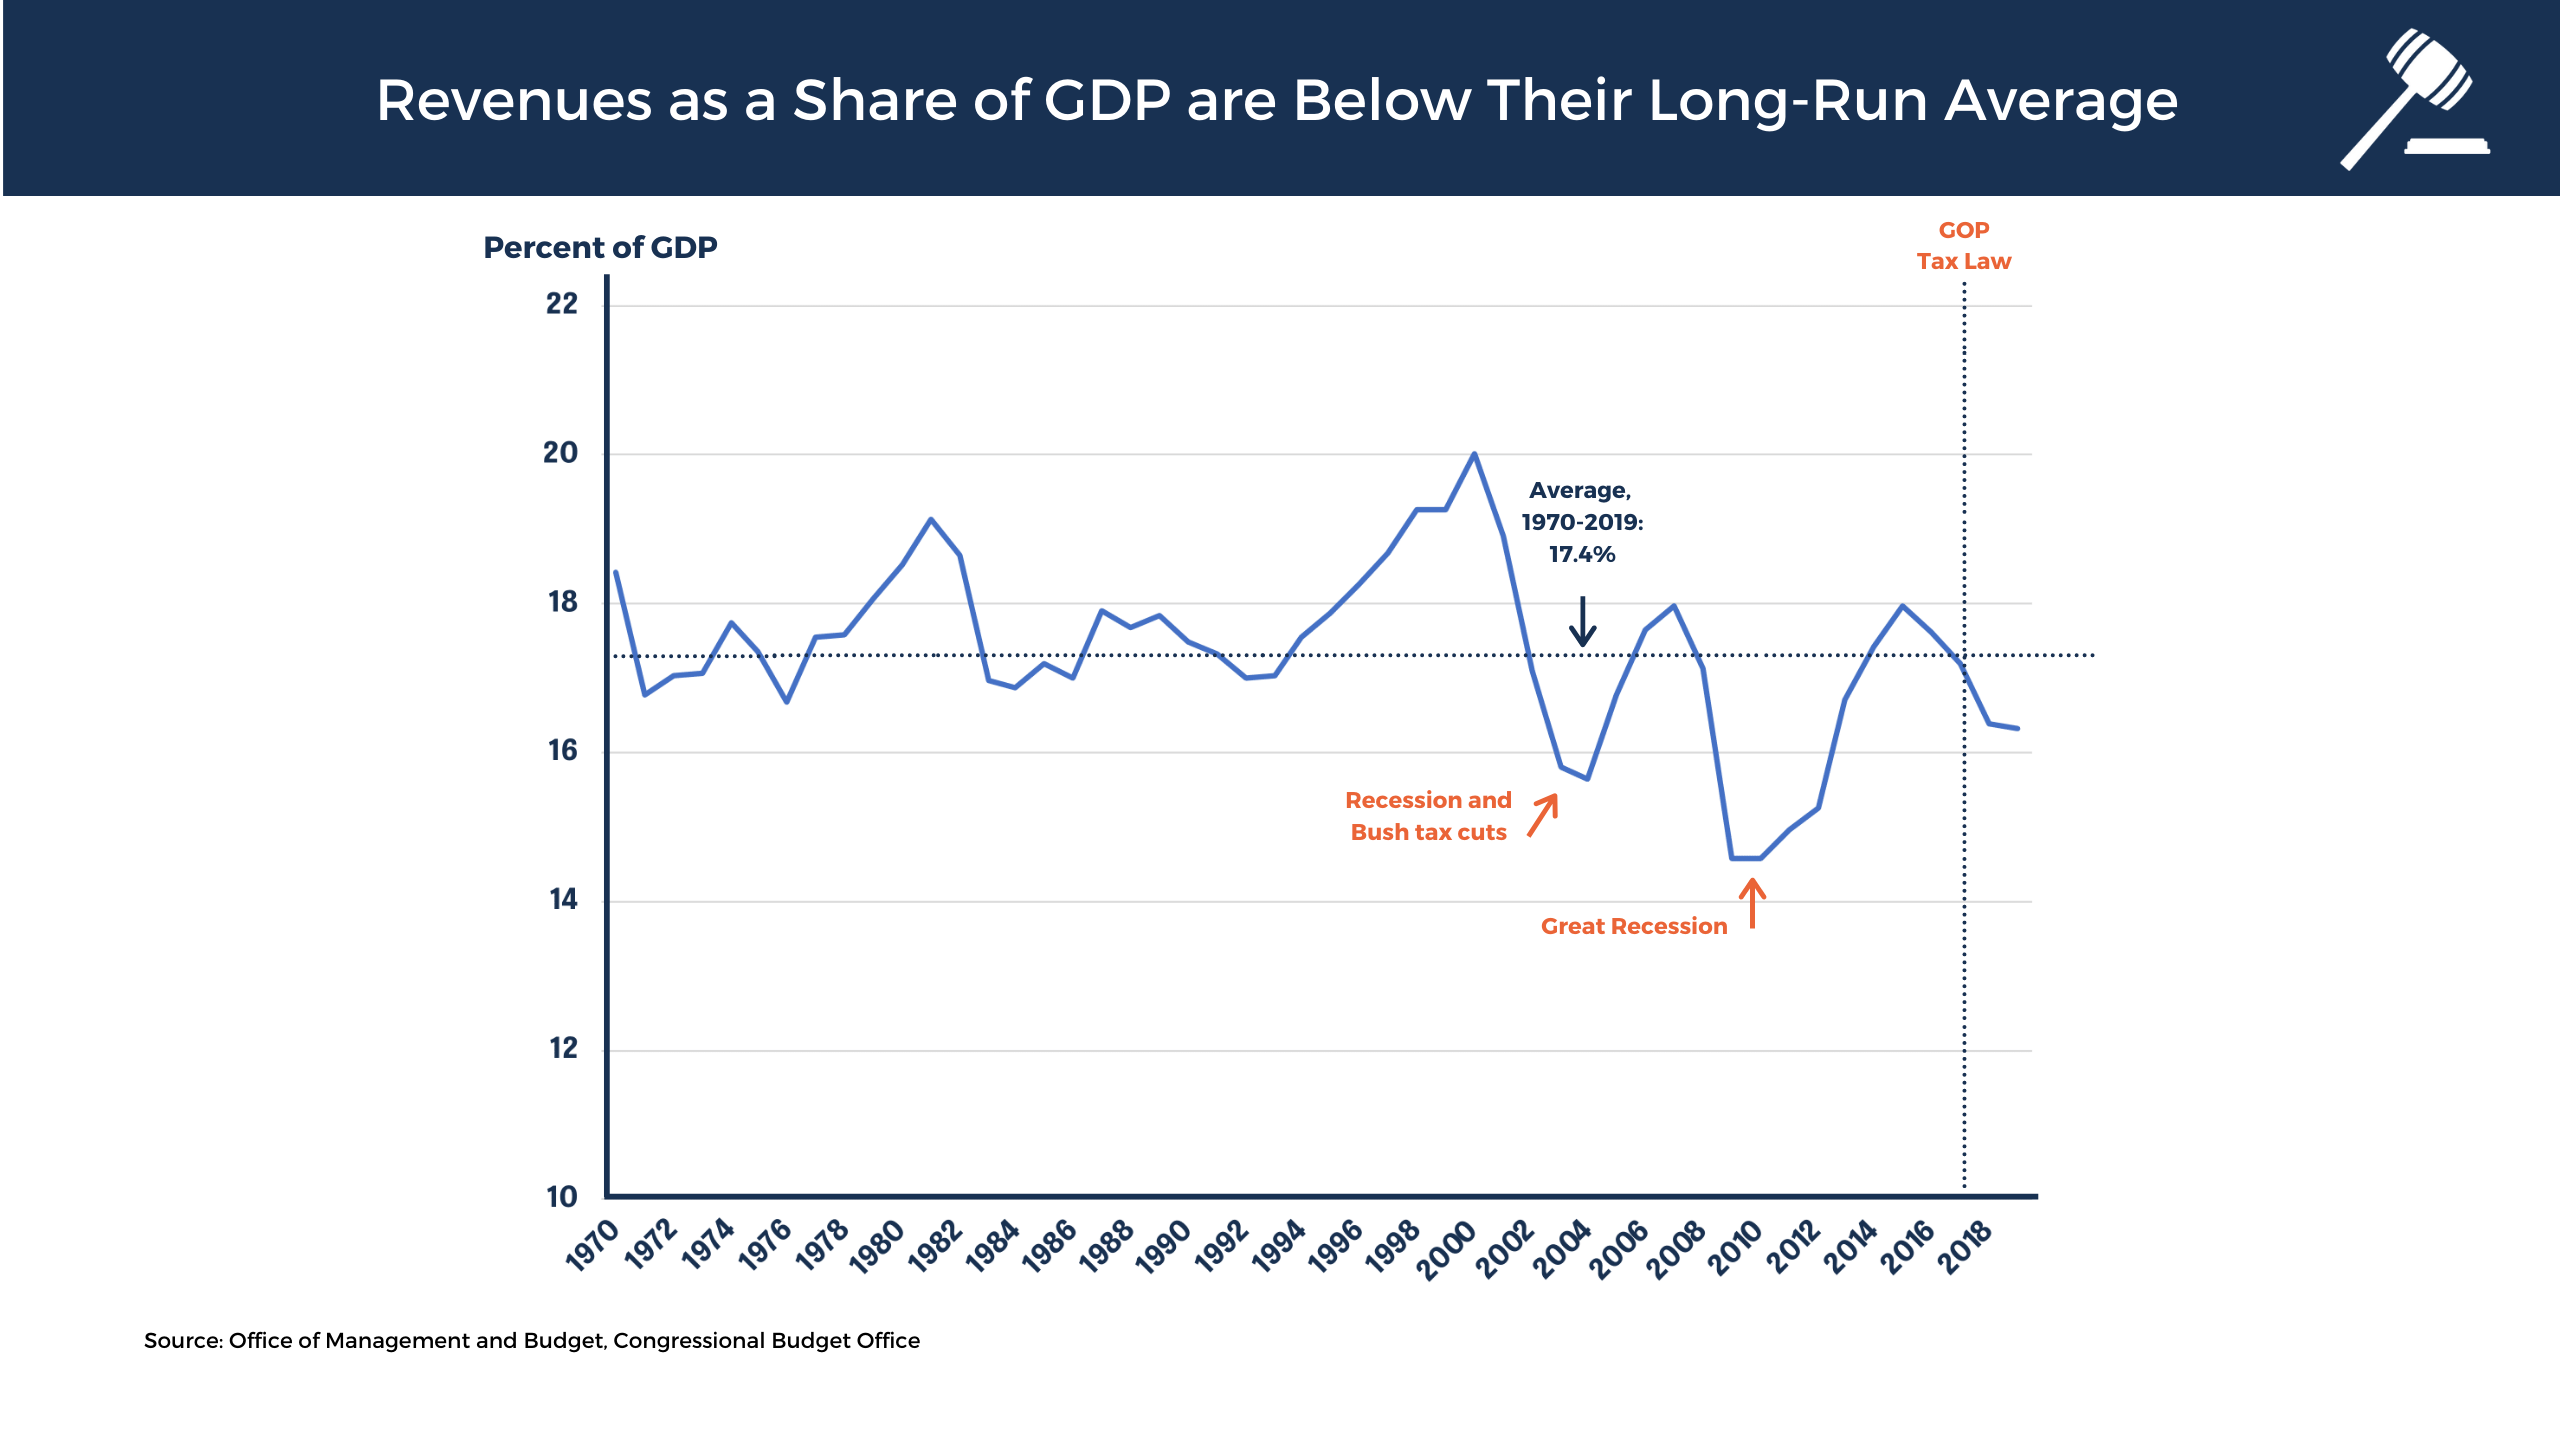 Revenues as a share of GDP are below the long run forecast average